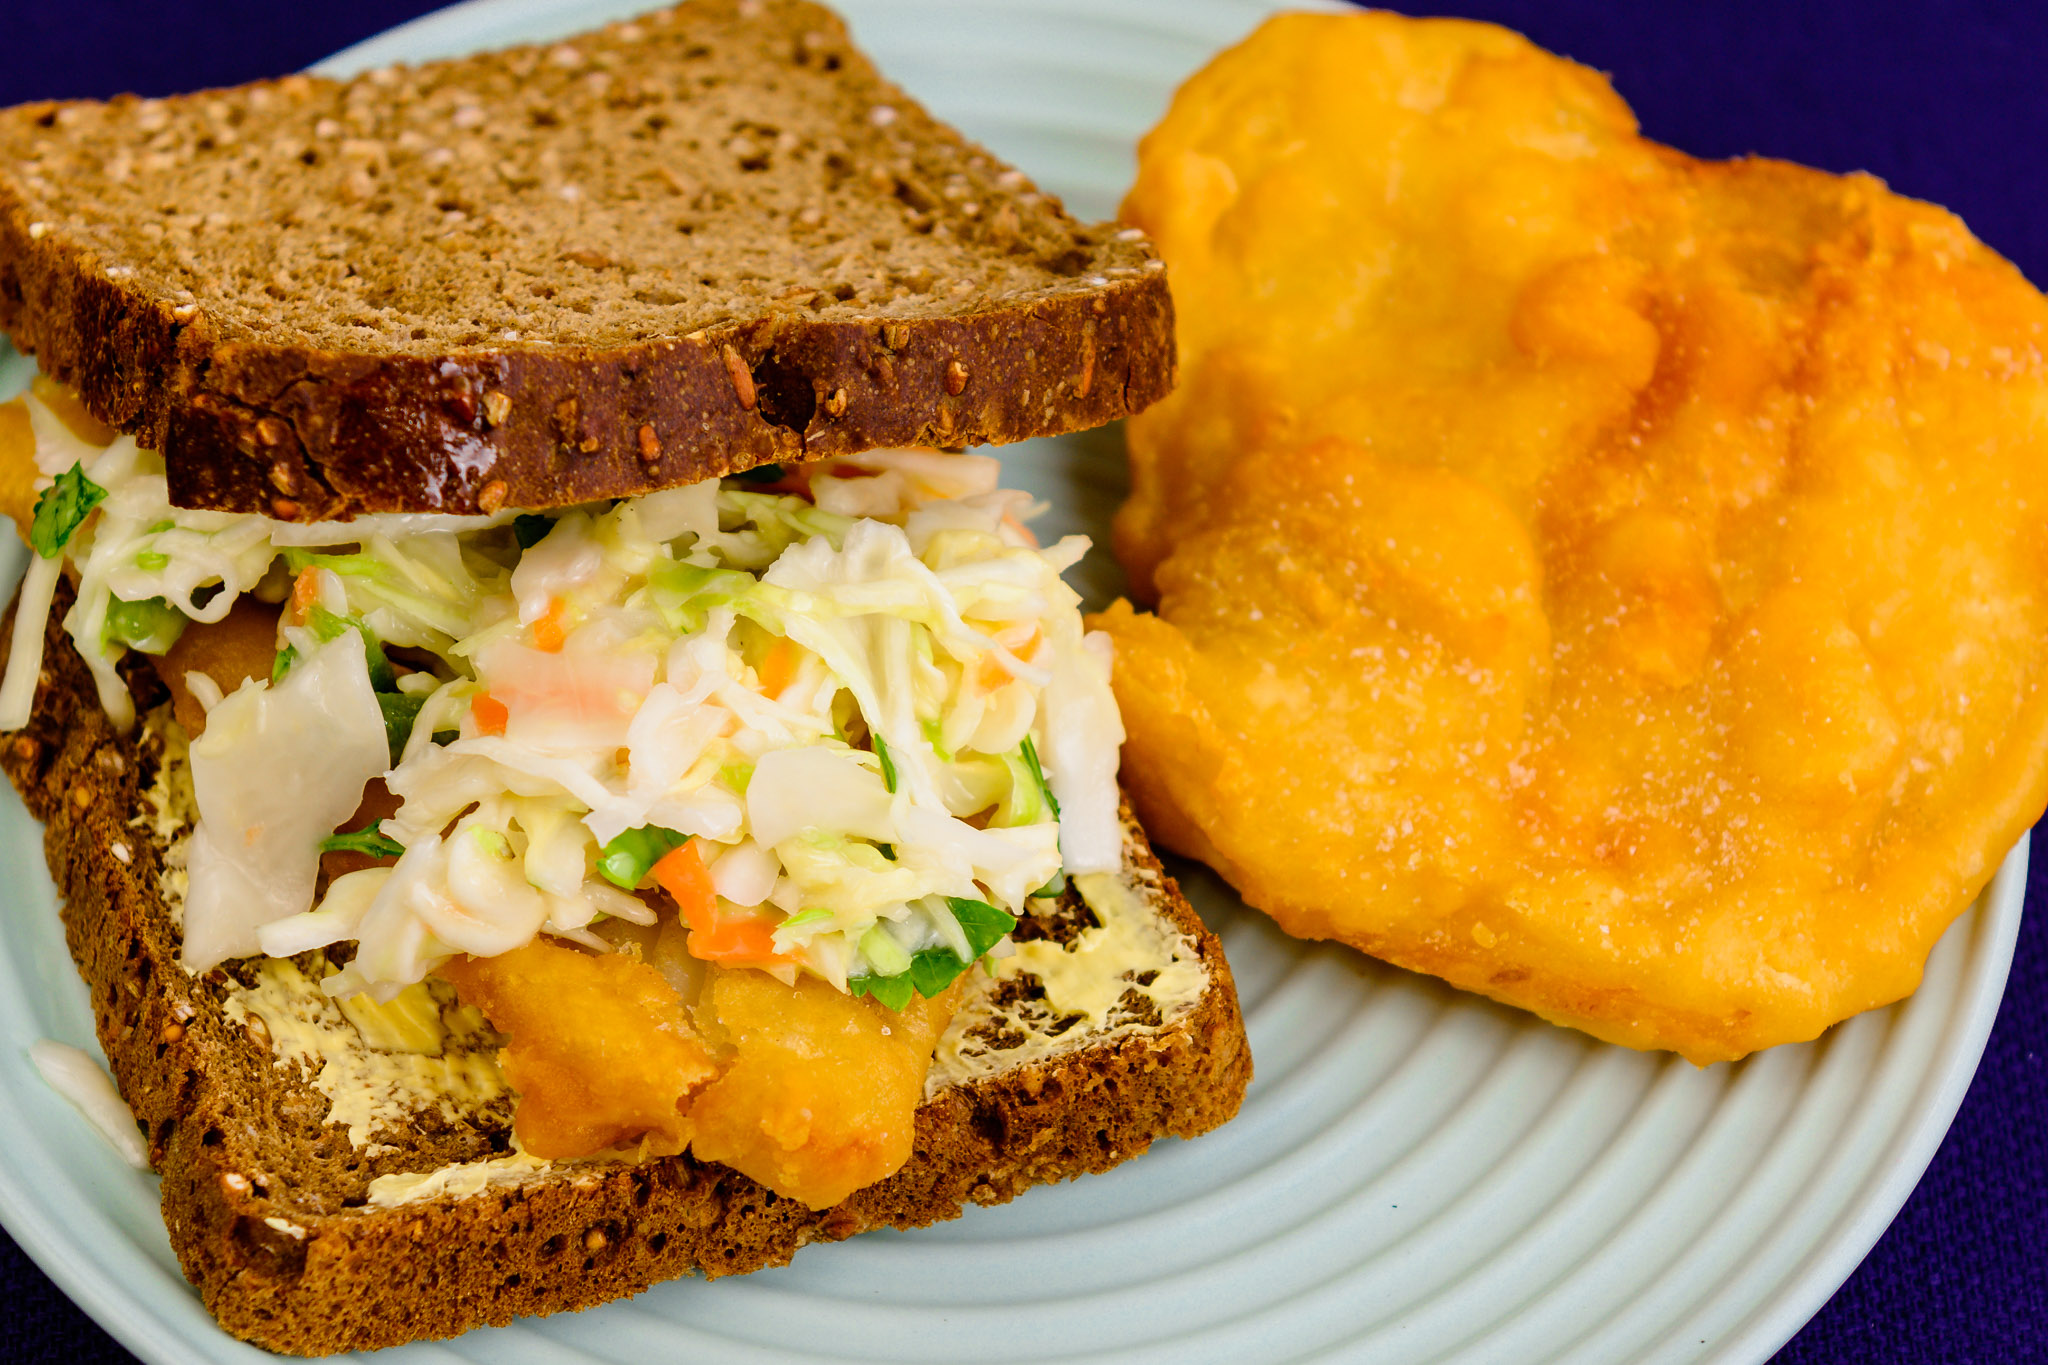 Payday dinner. Fish and coleslaw sandwich on rye bread with potato scallop.